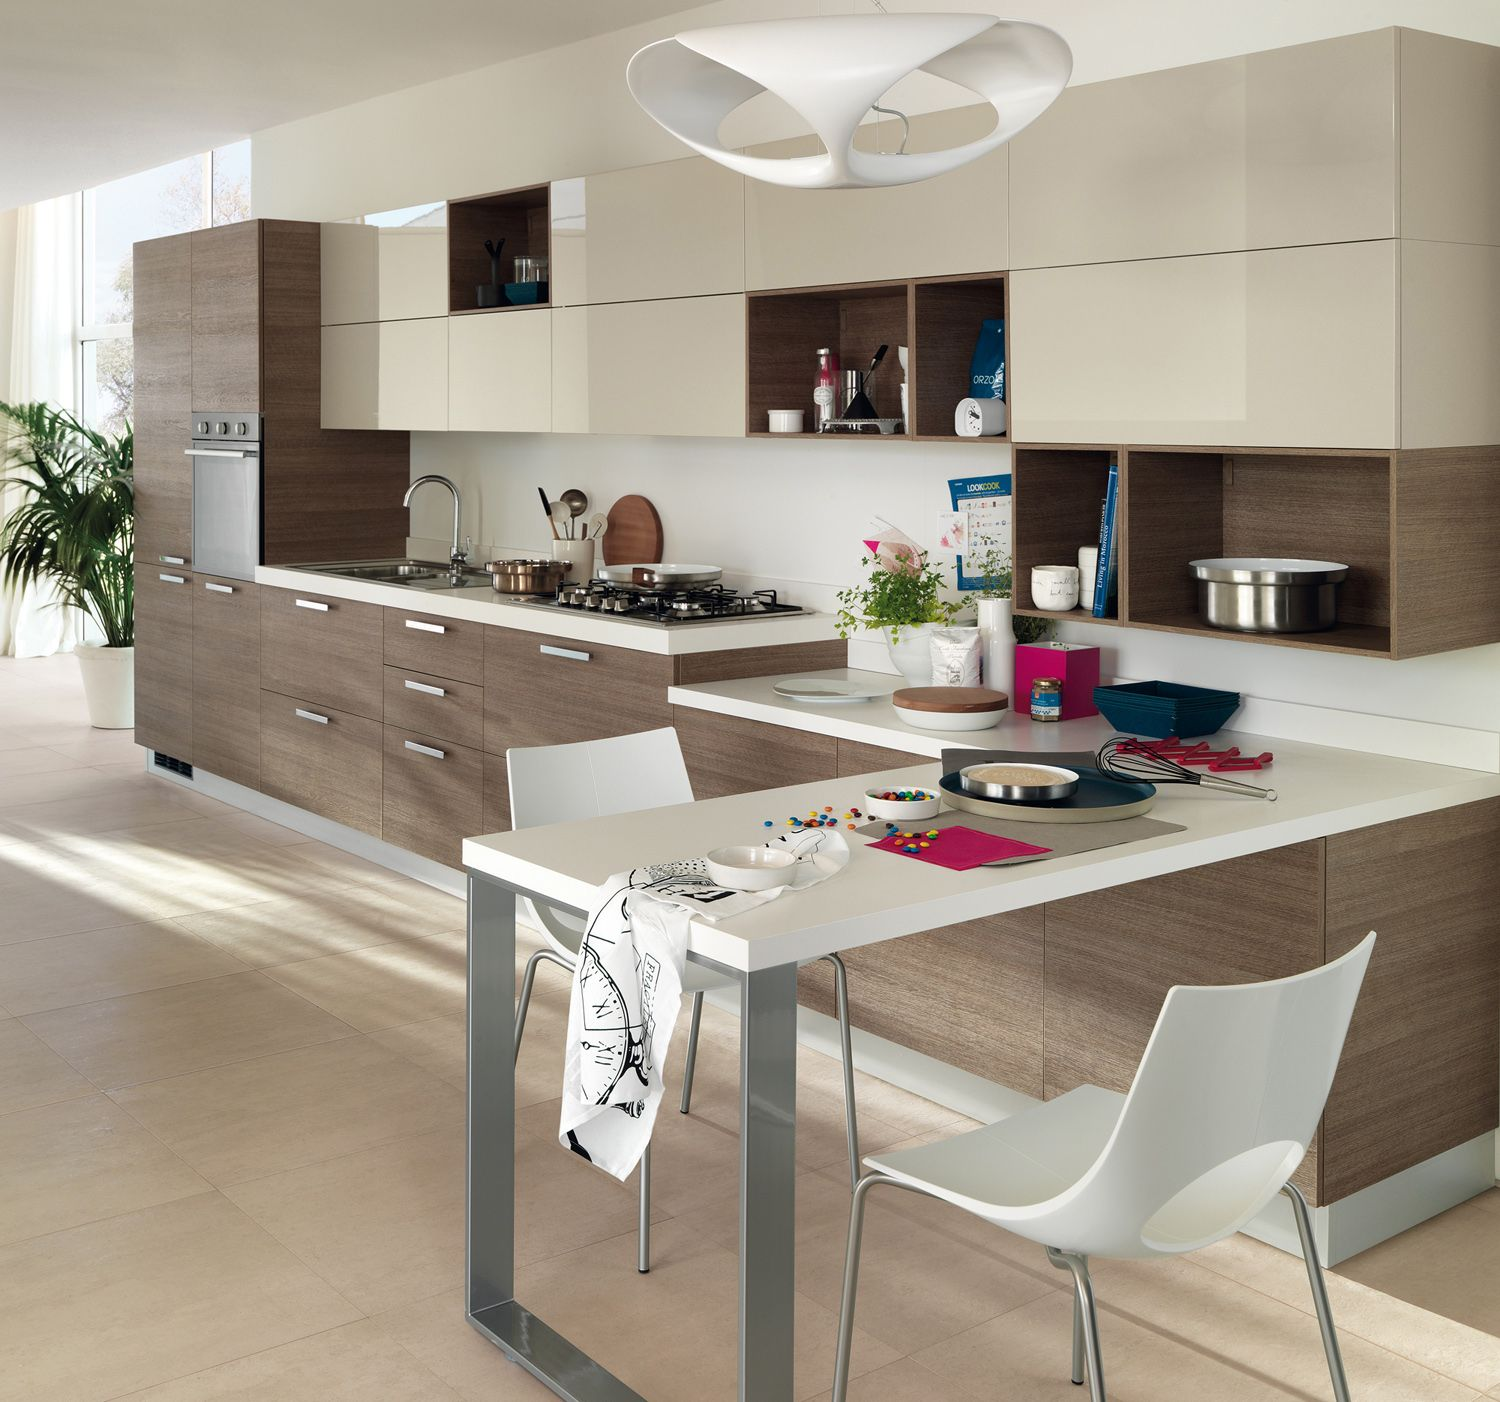 Sax kitchen design by Vuesse. A new look for the Sax #kitchen in the ...